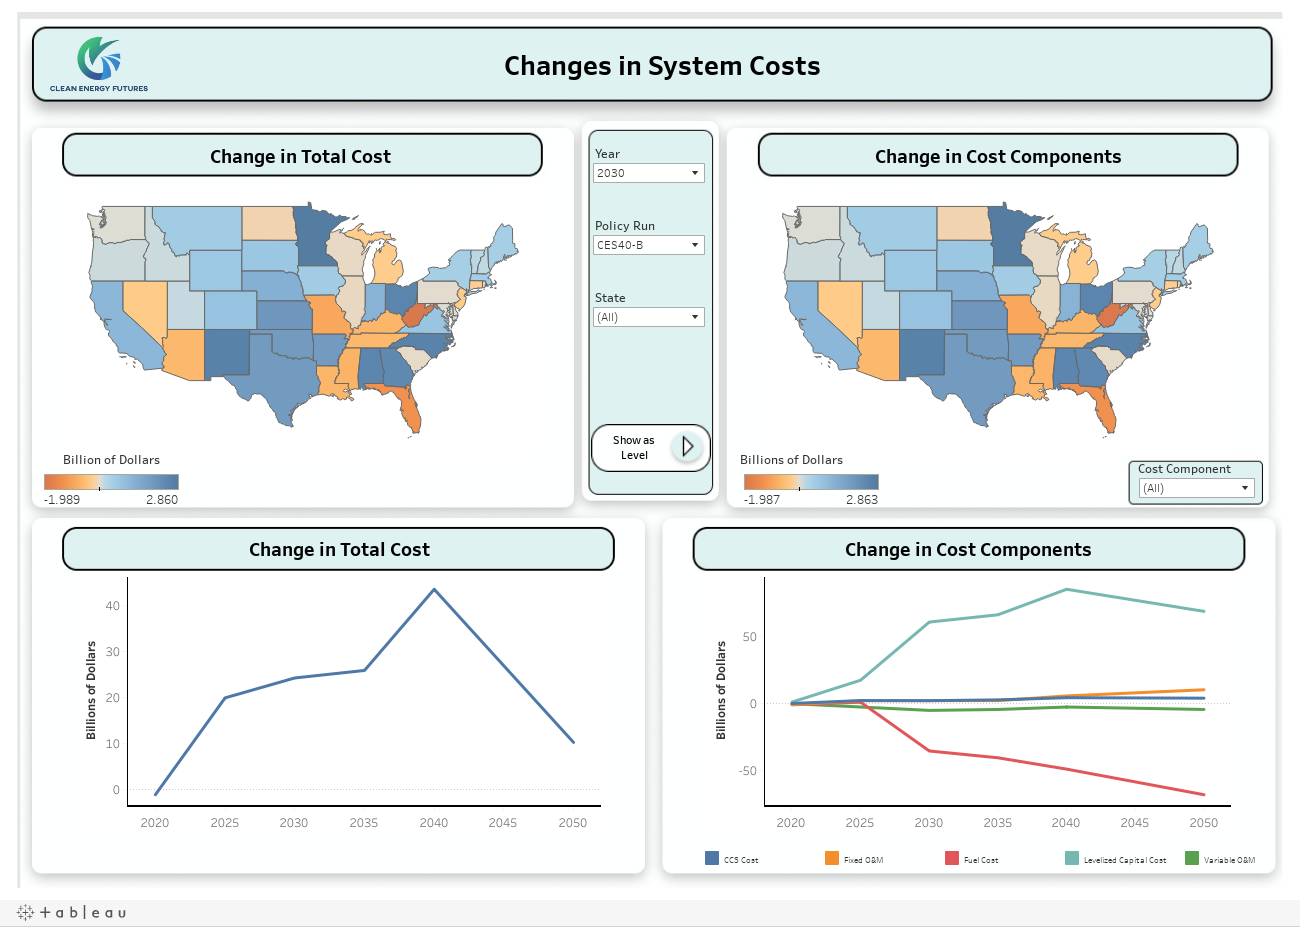 Cost Differences from Baseline